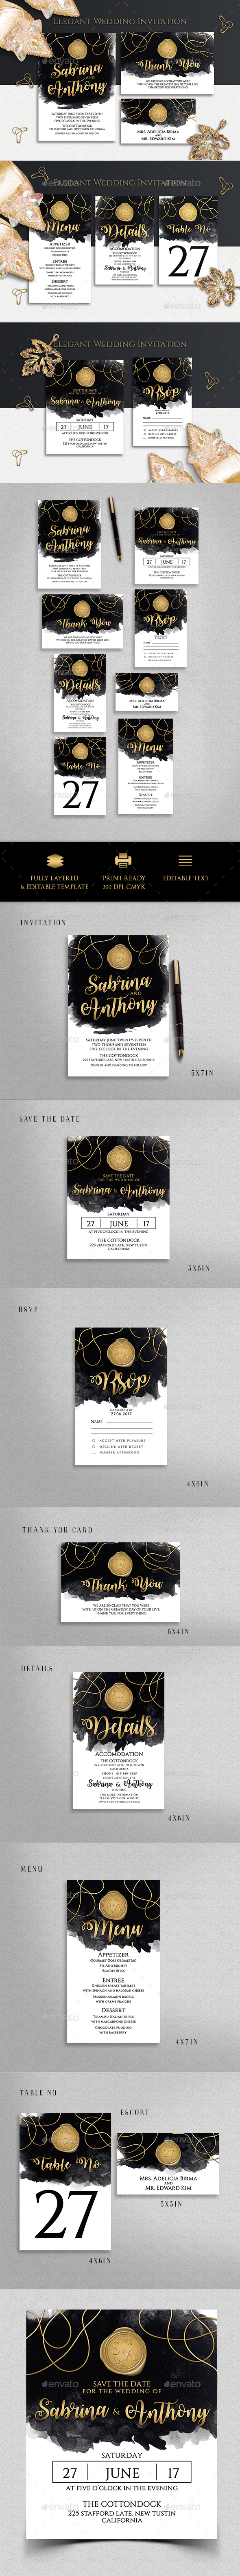 GraphicRiver Wedding Invitation 20858931